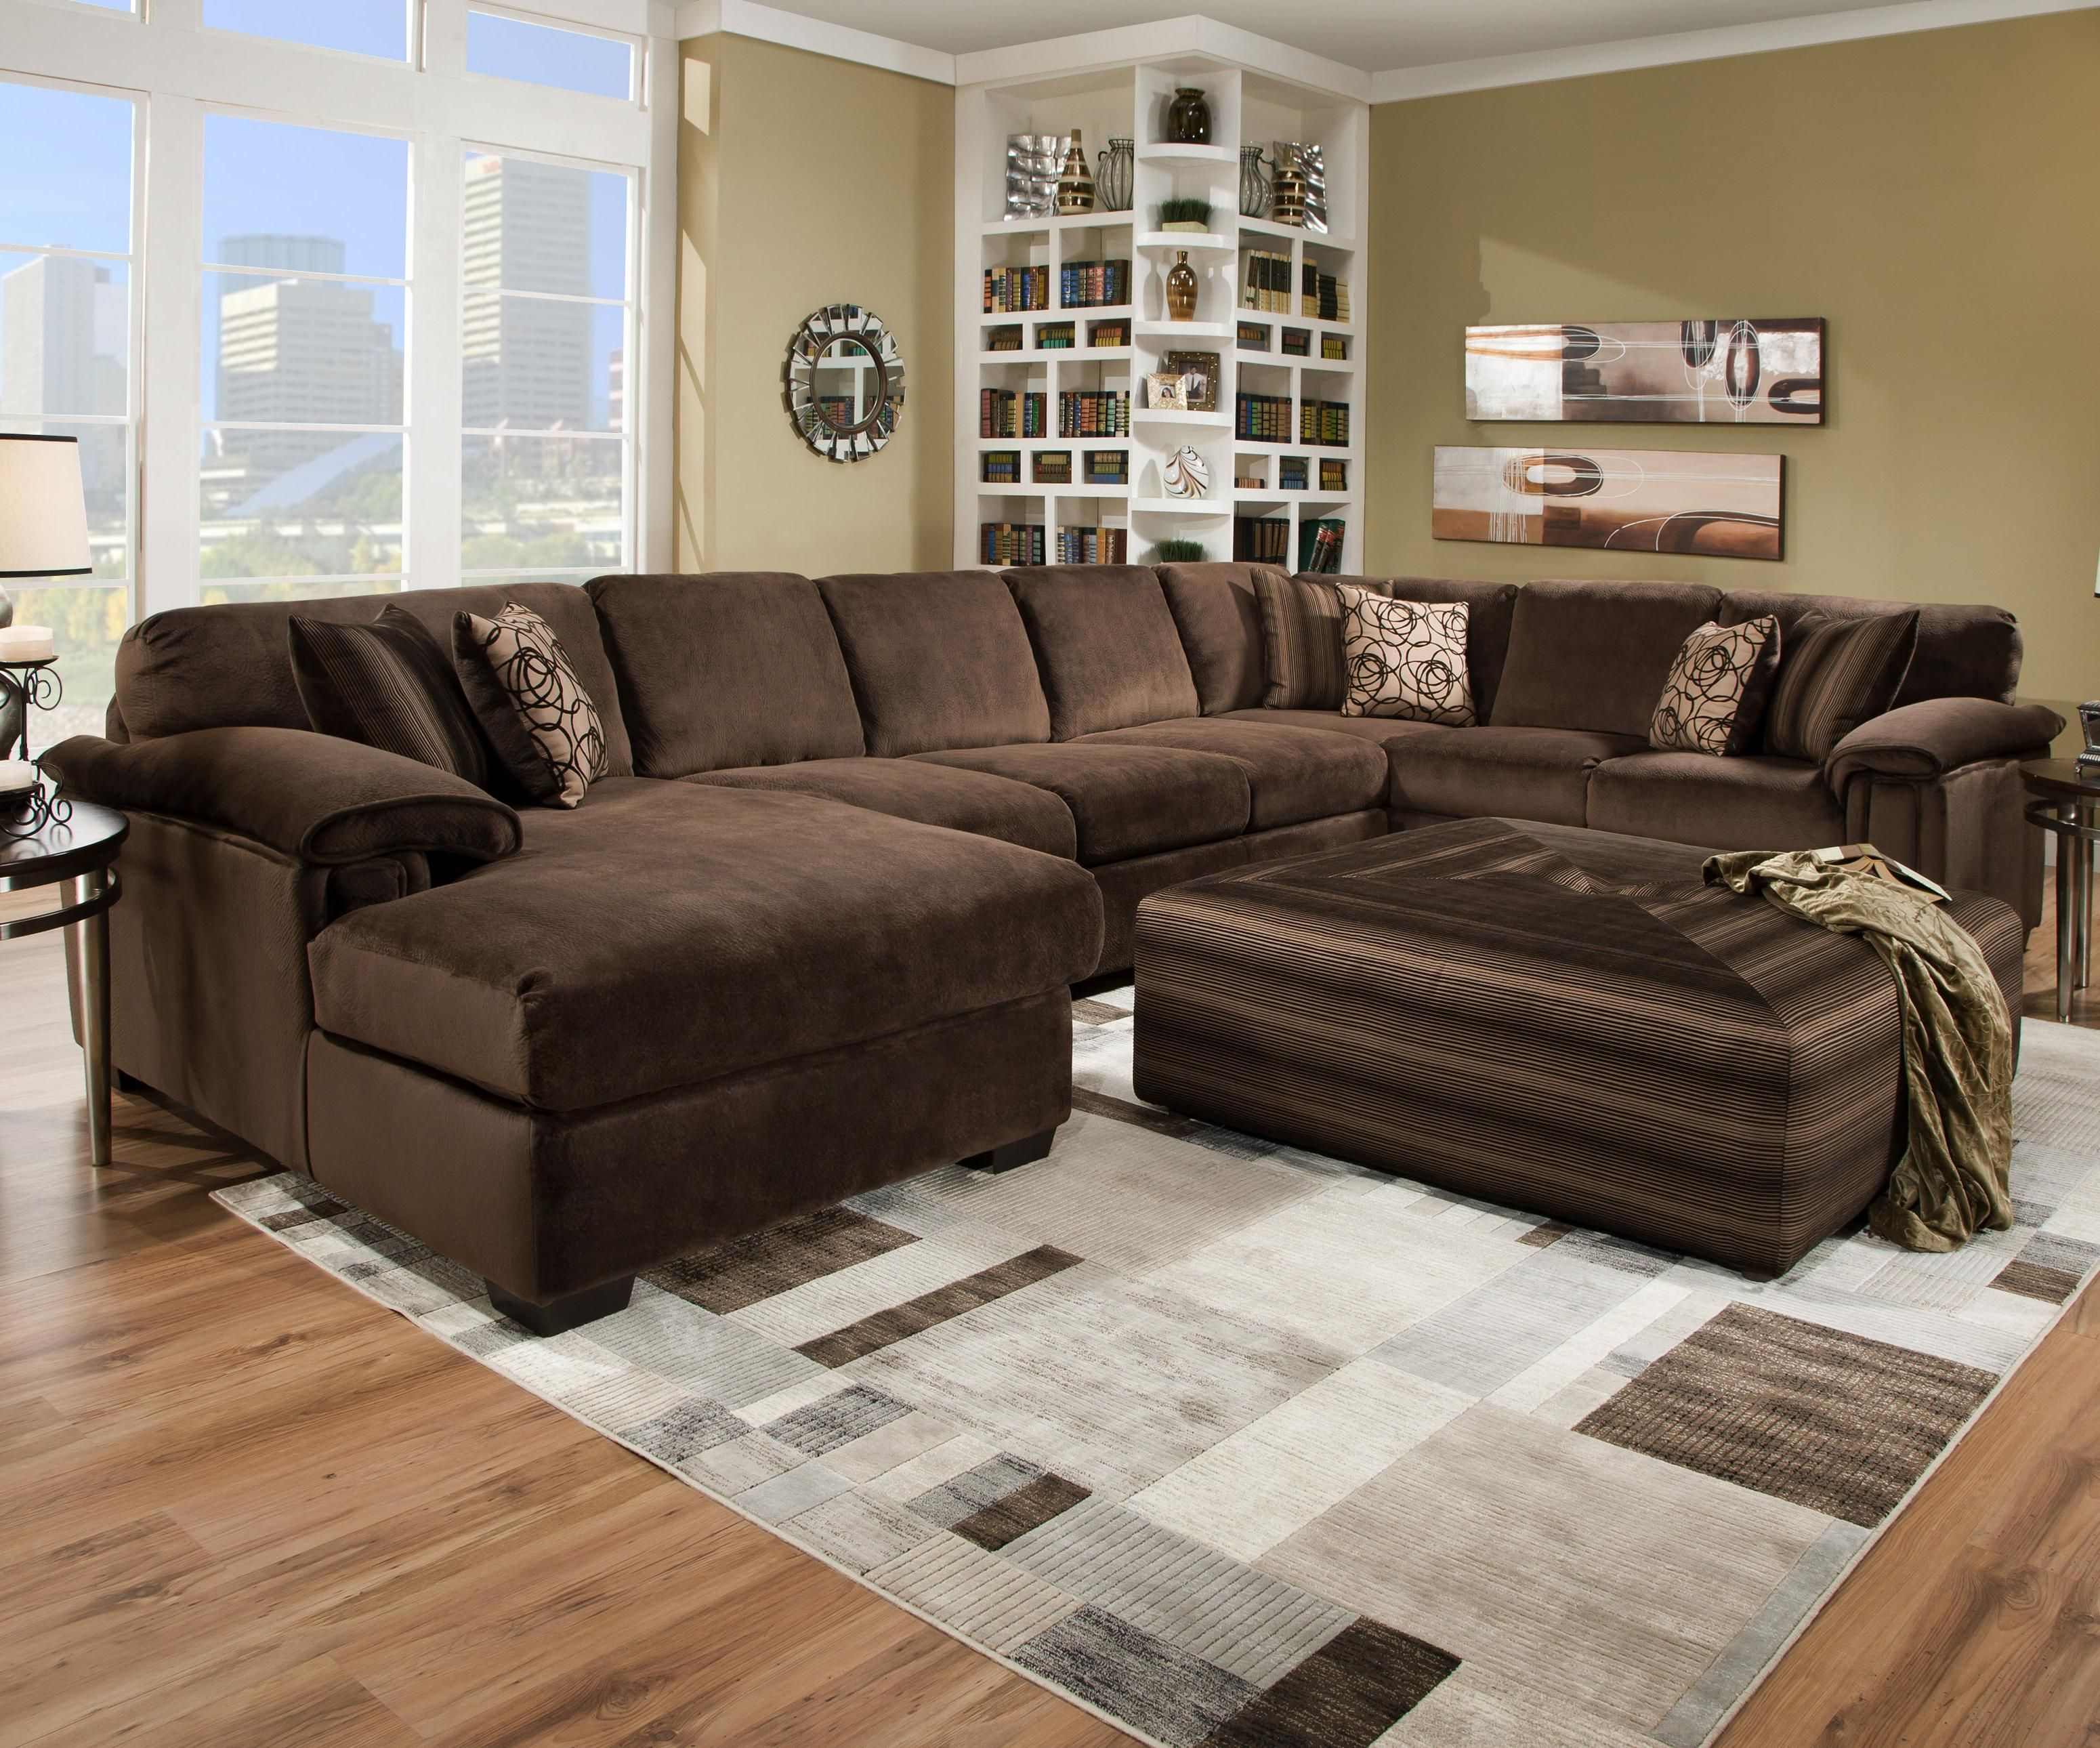 6500 Sect Sectional Sofa By Corinthian Oversized